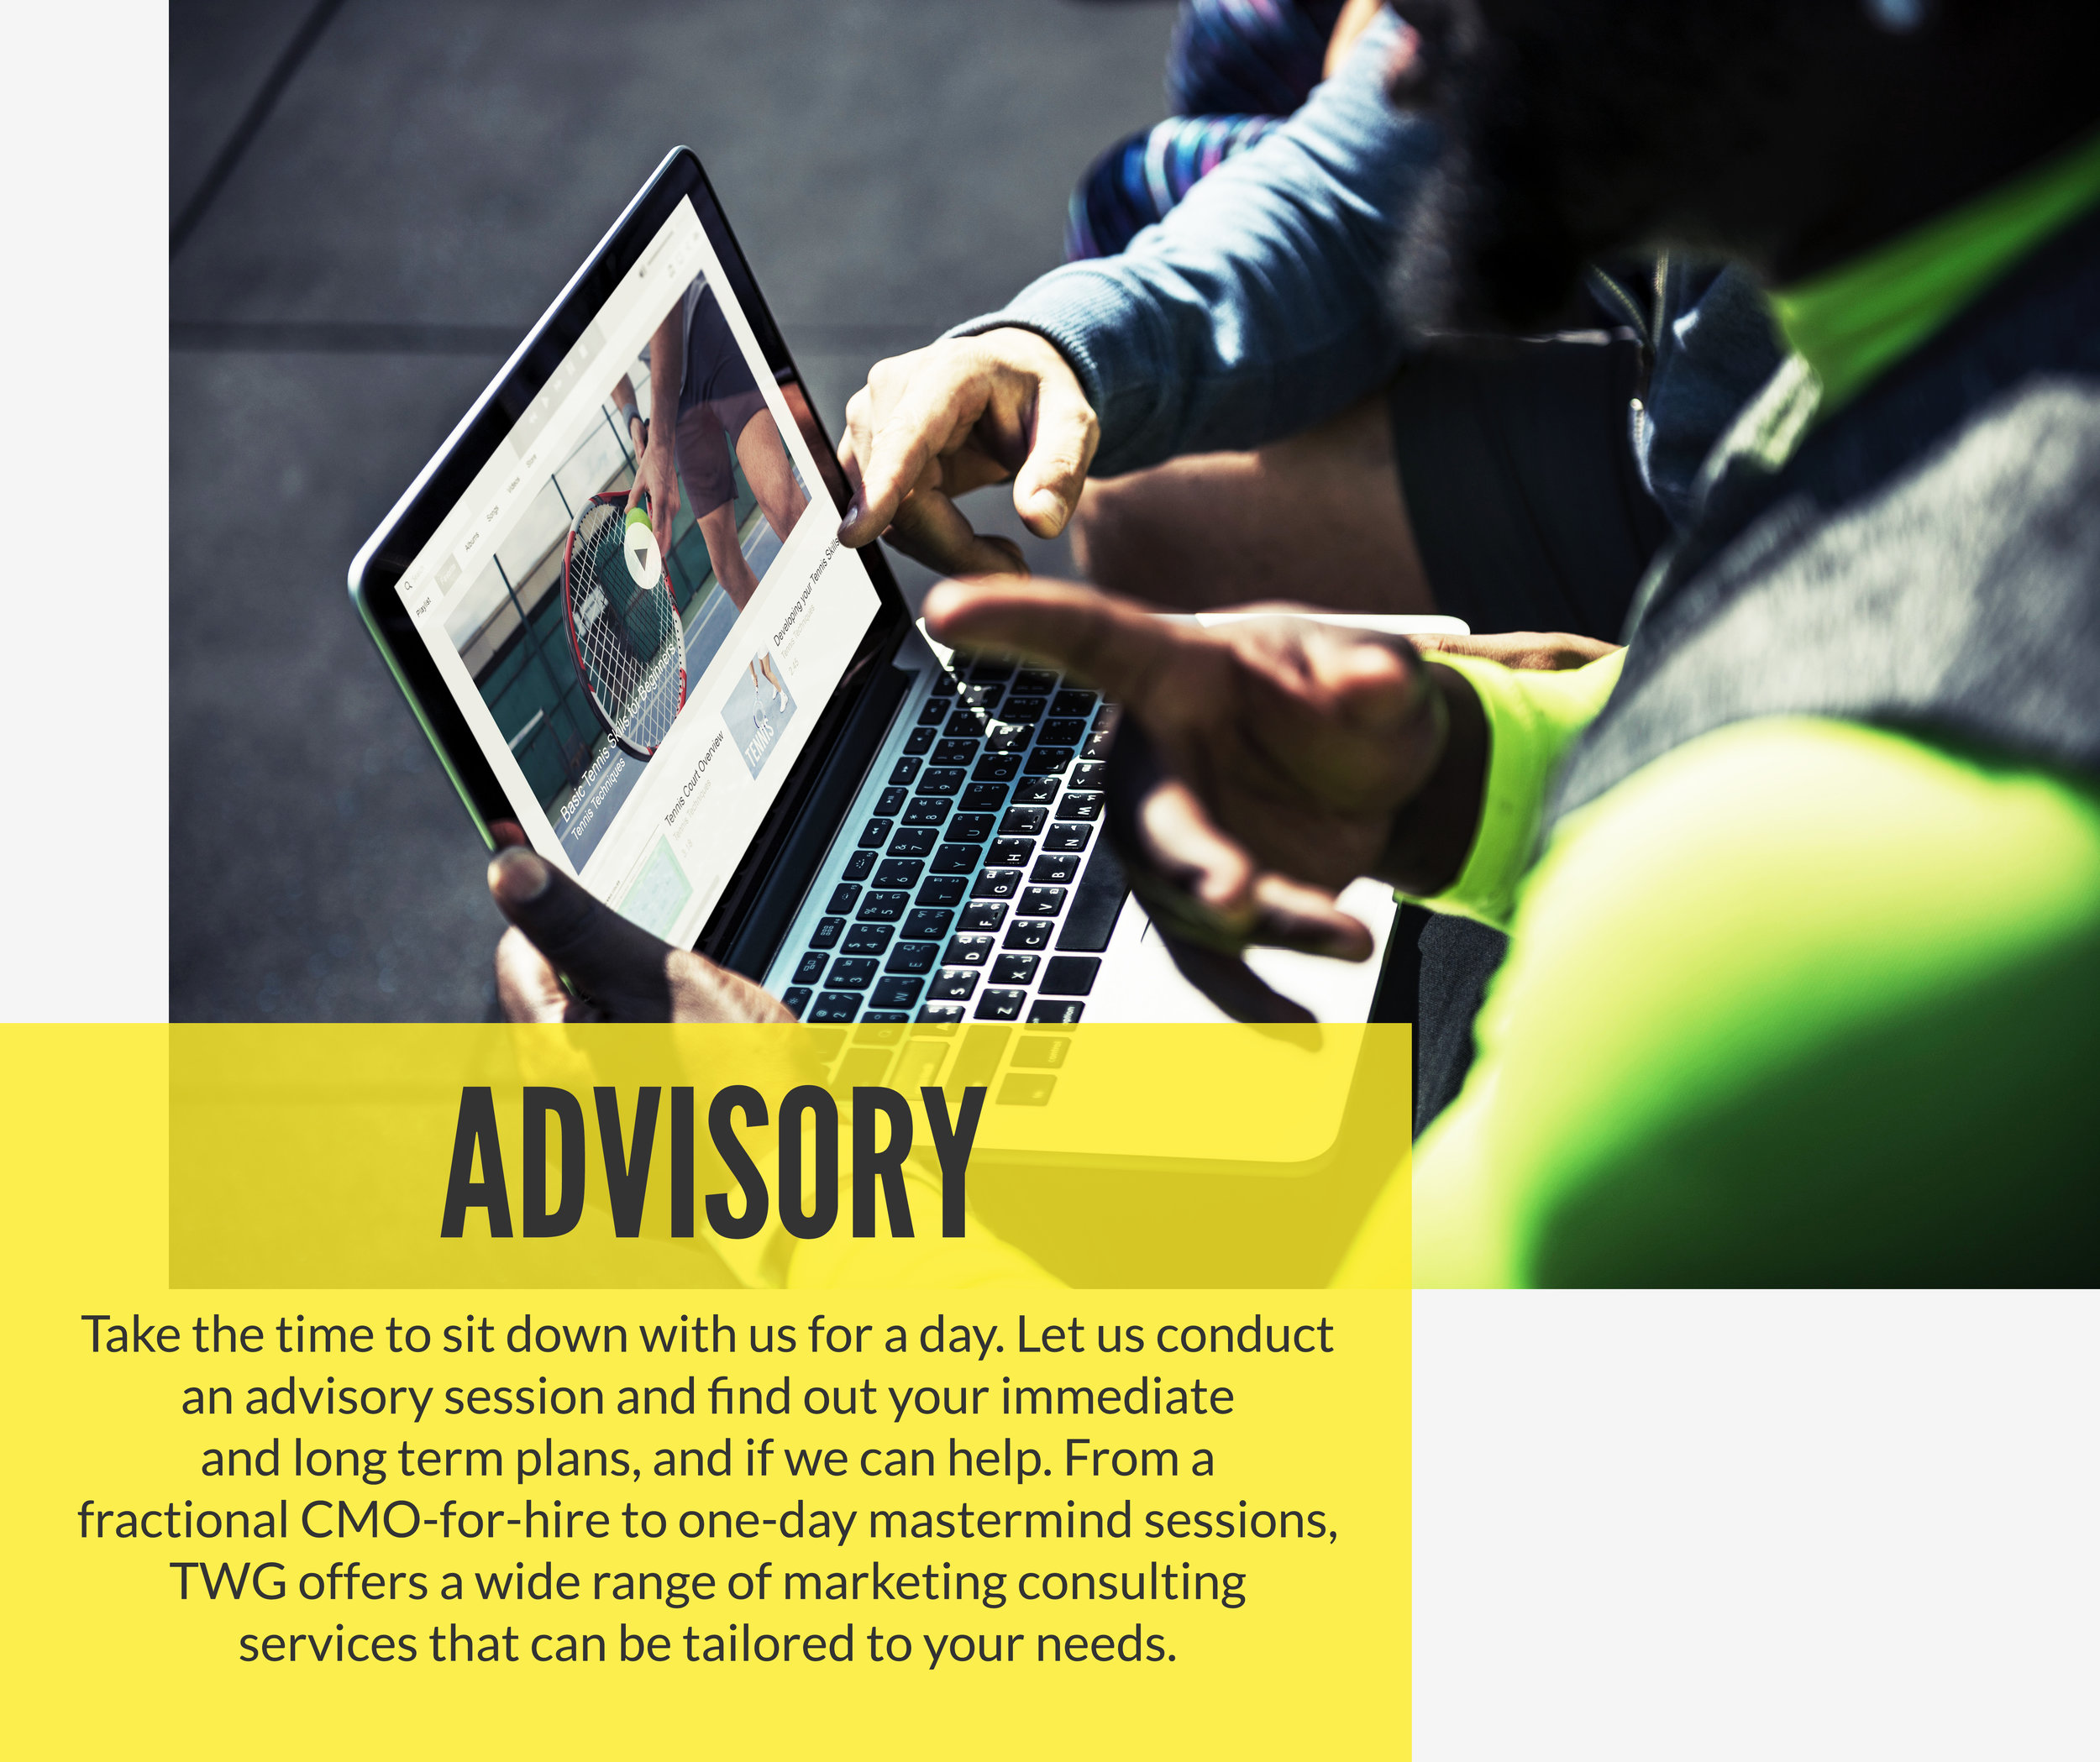 Take the time to sit down with us for a day. Let us conduct an advisory session and find out your immediate and long-term plans to determine whether we can help. From a fractional CMO-for-hire to a one-day mastermind sessions, TWG offers a wide range of marketing consulting services that can be tailored to your needs.